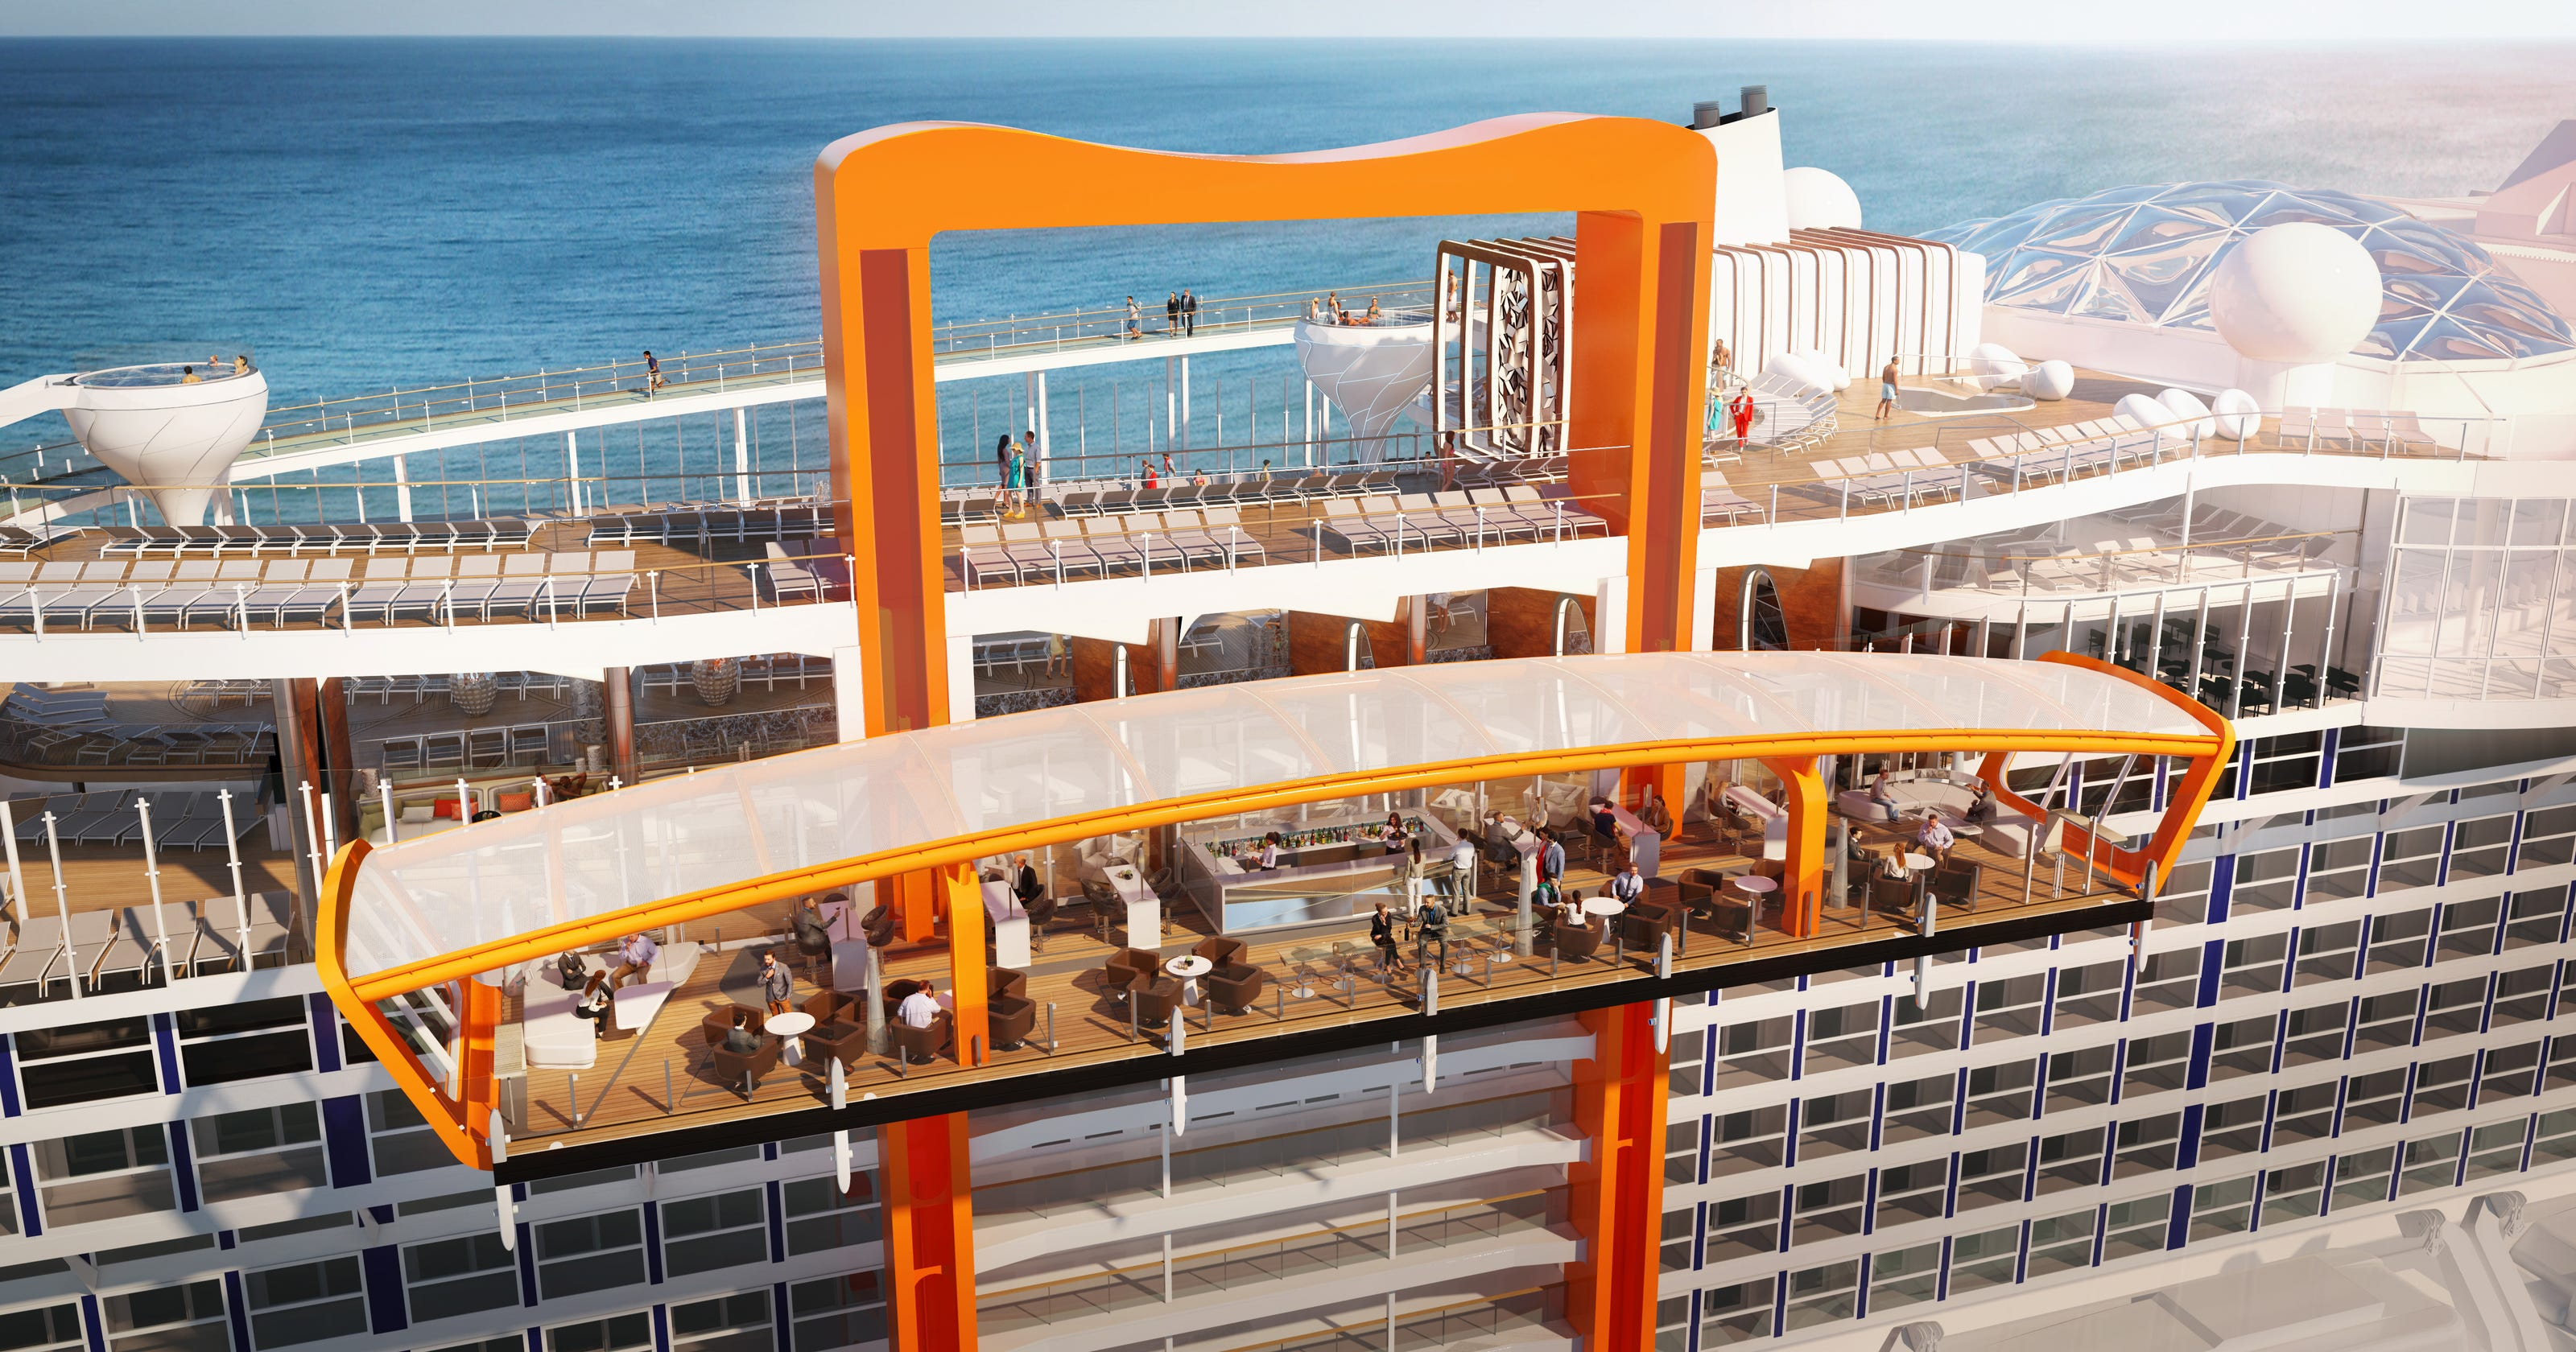 Celebrity Edge: New cruise ship will have 'Magic Carpet